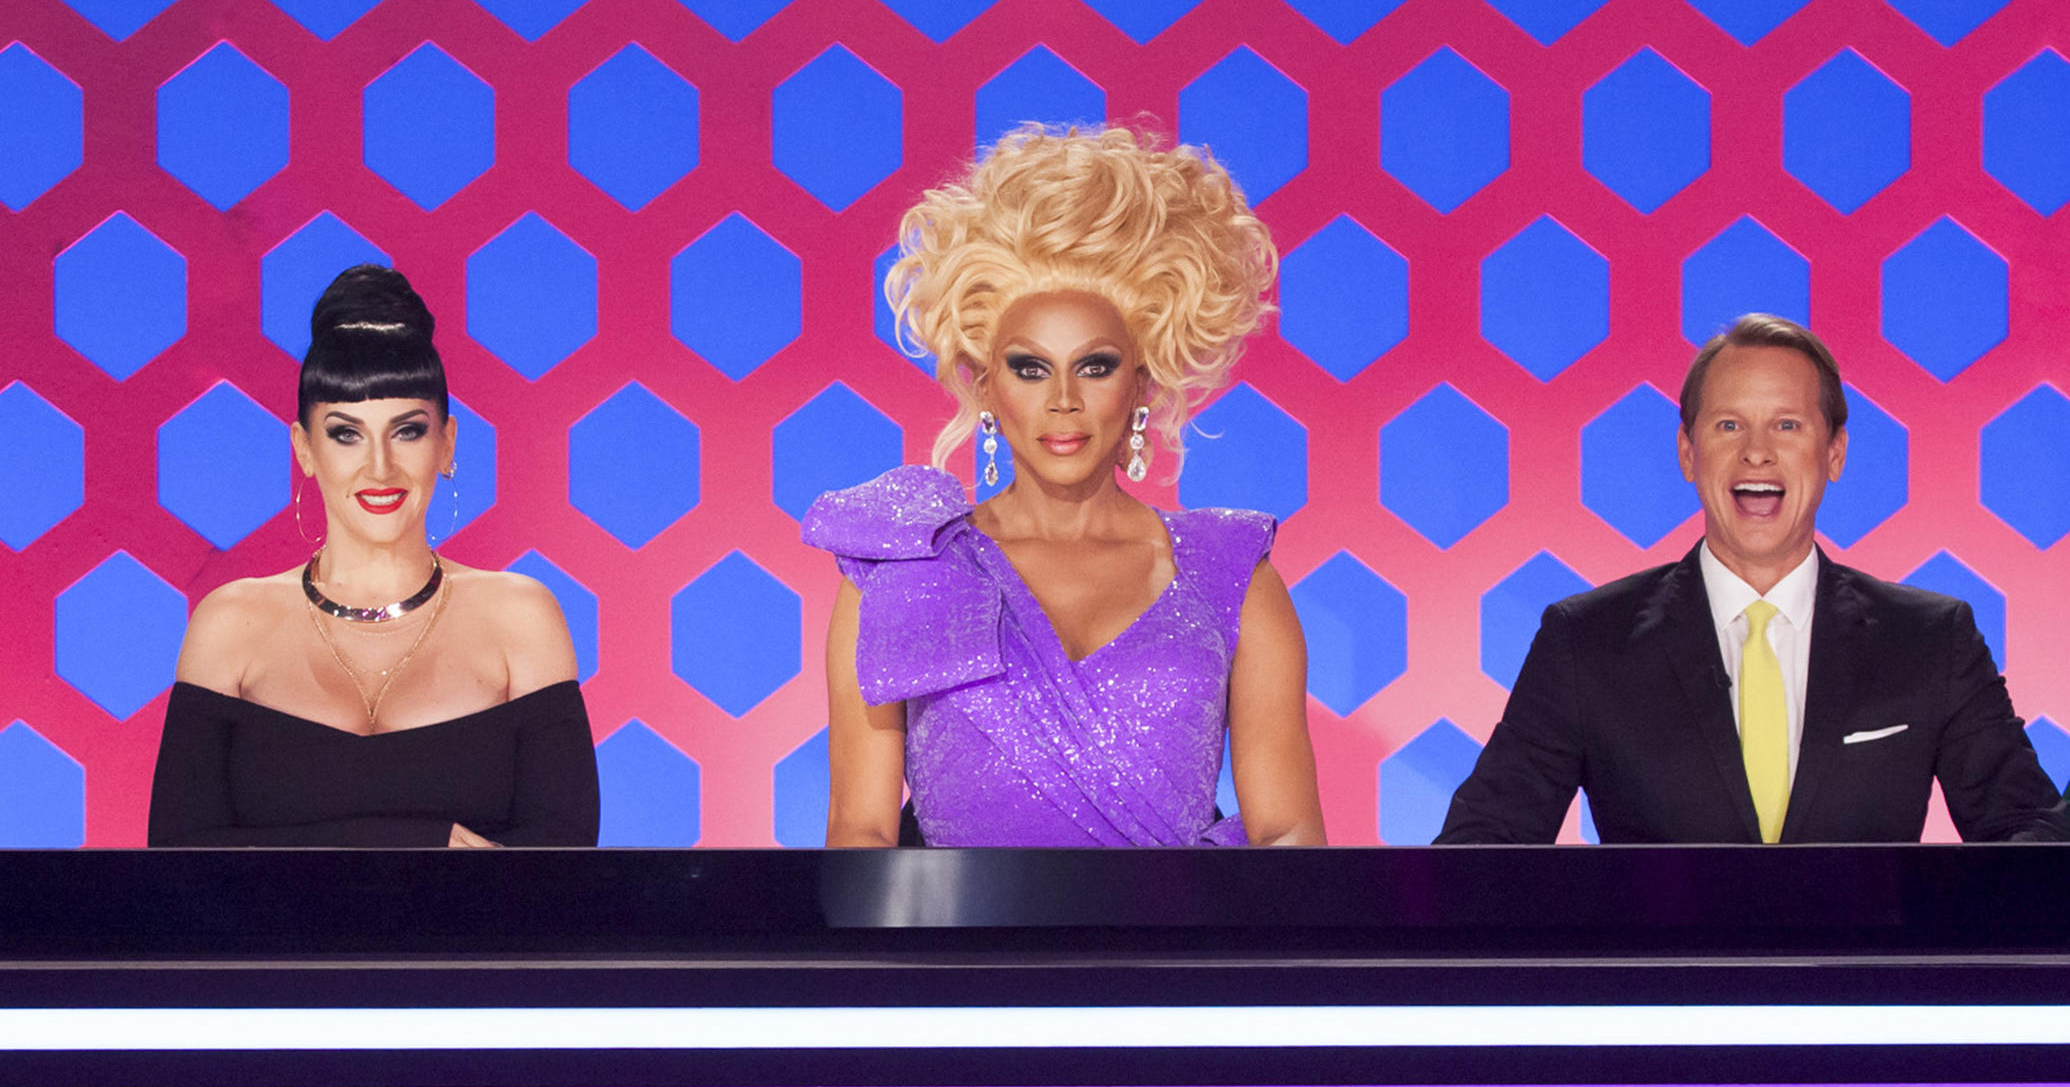 Michelle Visage, RuPaul and Carson Kressley, the judges from Ru Pul's Drag Race, sit behind their desk